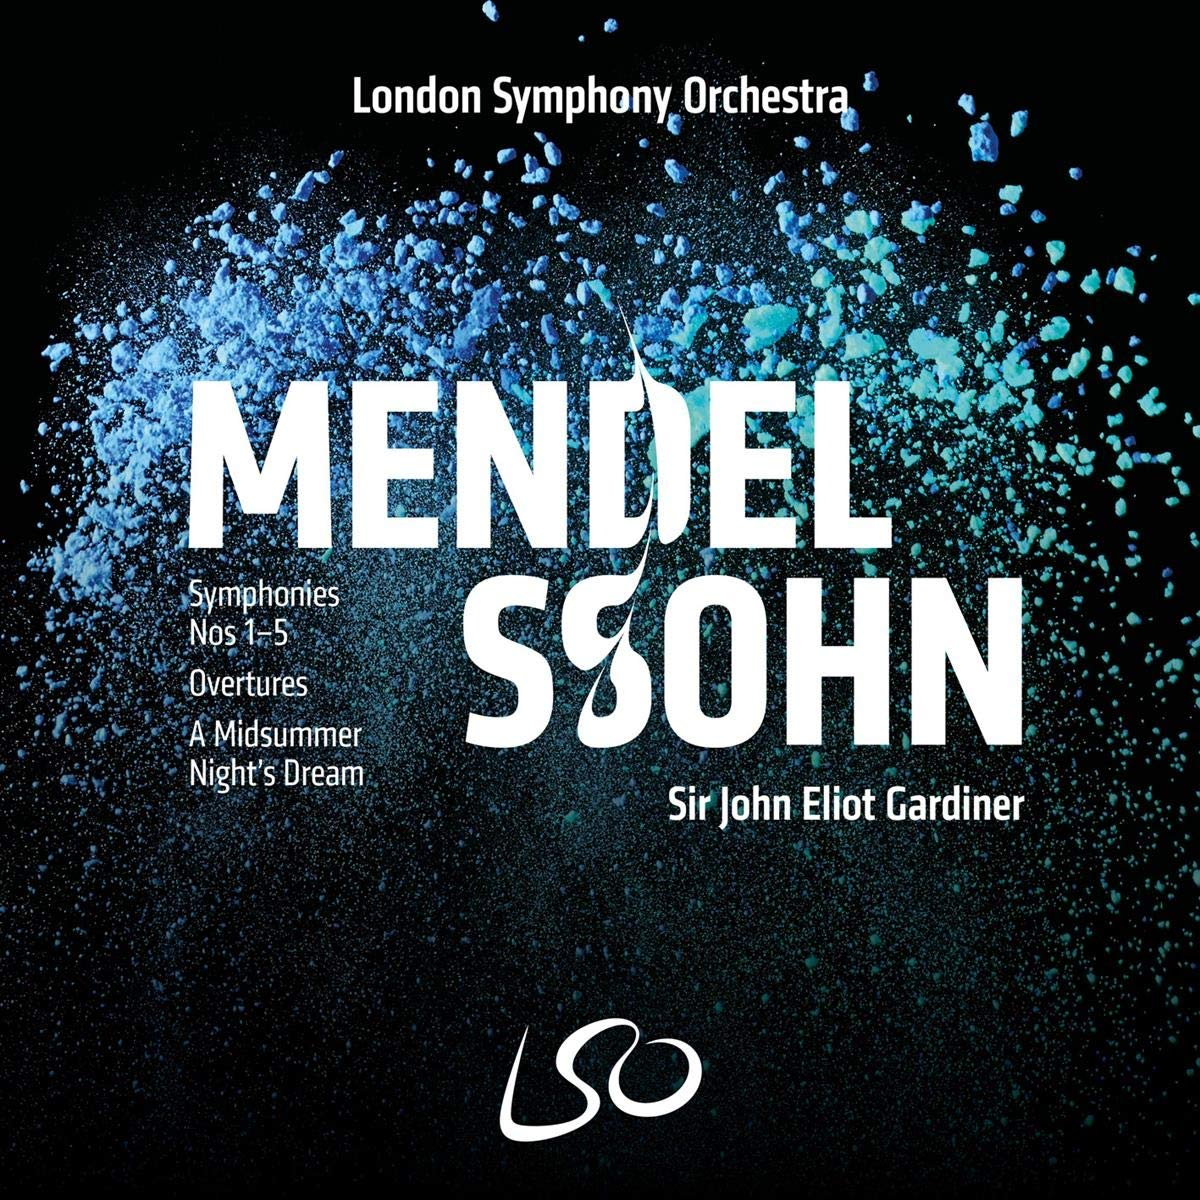 Mendelssohn: Symphonies Nos.1-5 by LSO LIVE